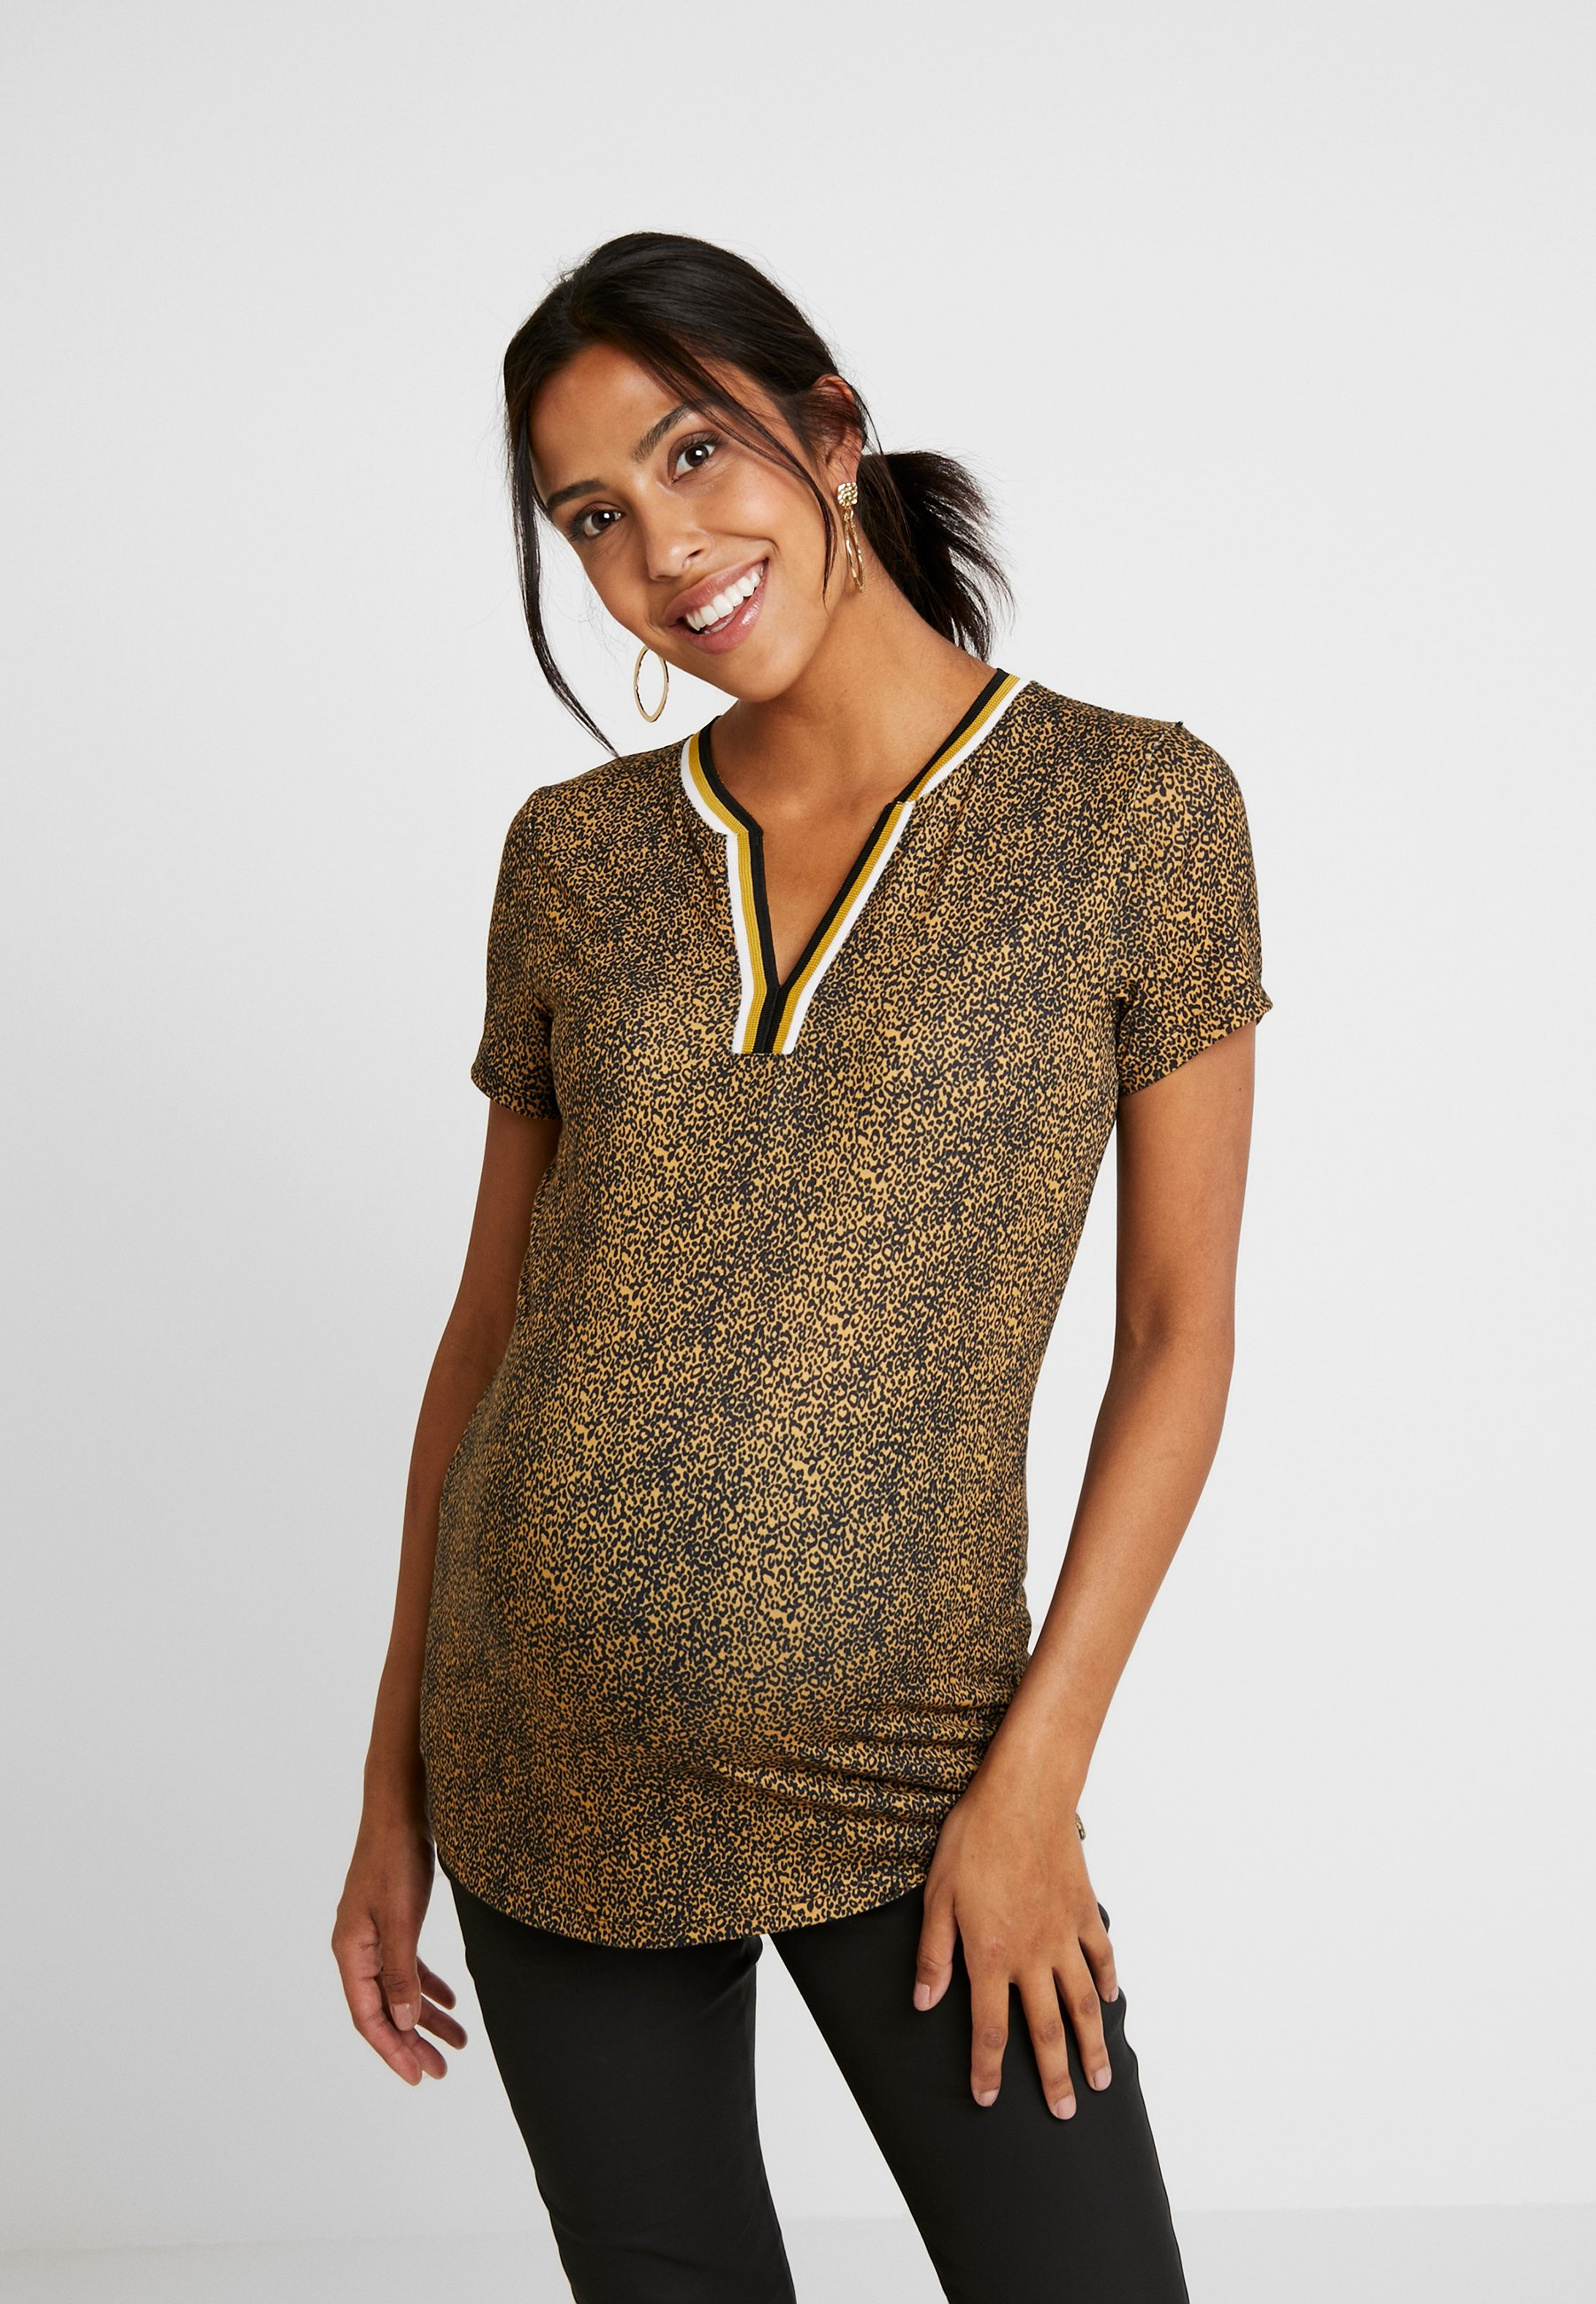 Con Love2wait LeopardT shirt Stampa Ocre thQsrdCx